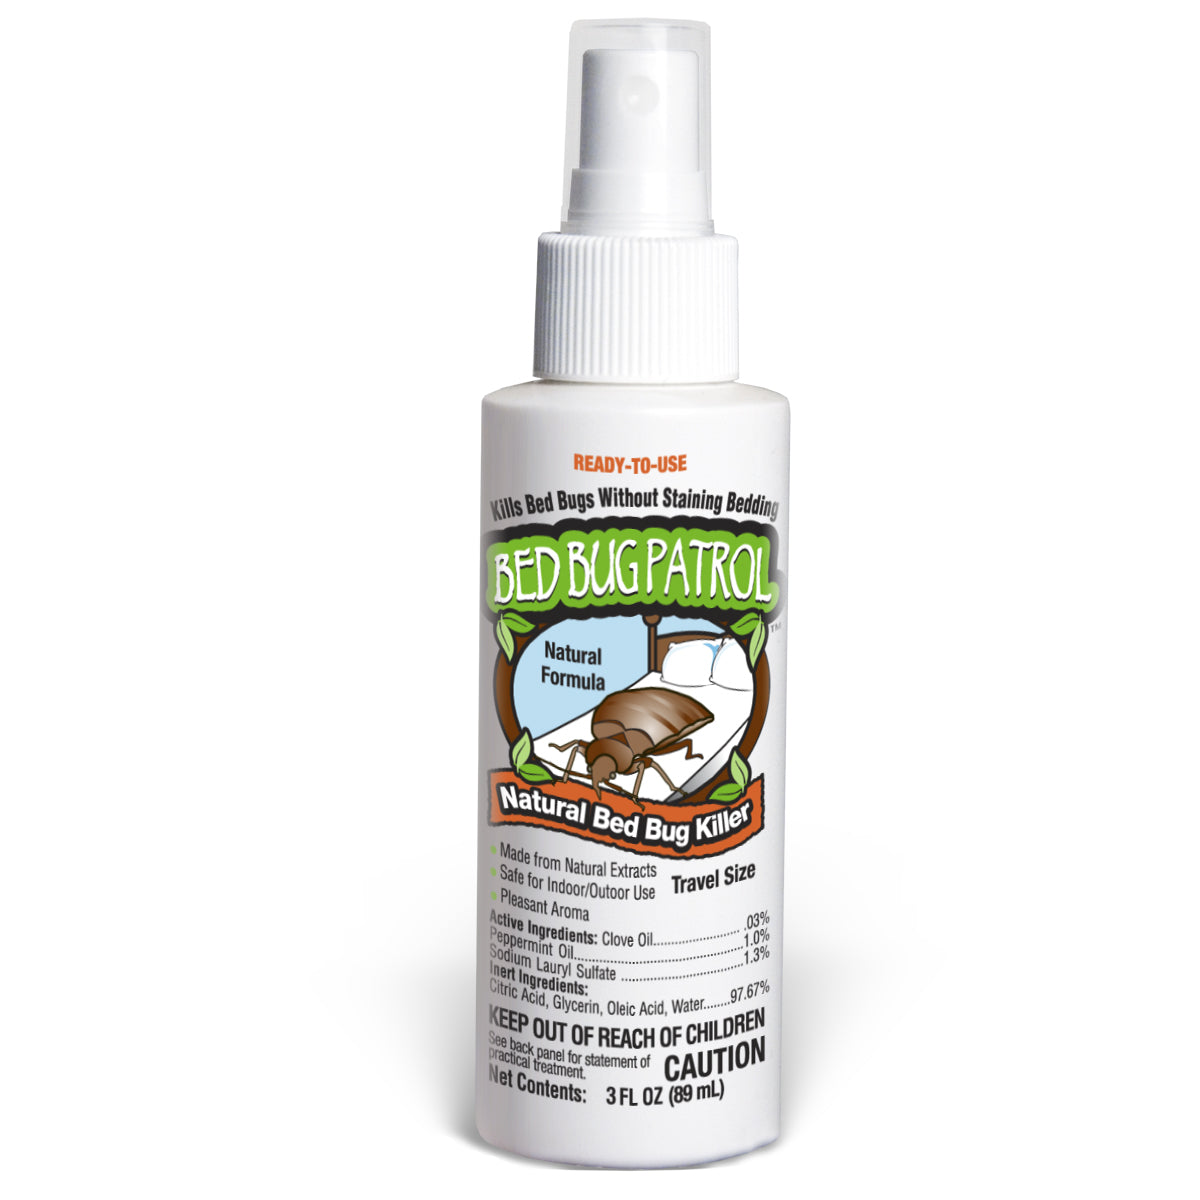 Bed Bug Patrol Bed Bug Killer Travel Size Spray